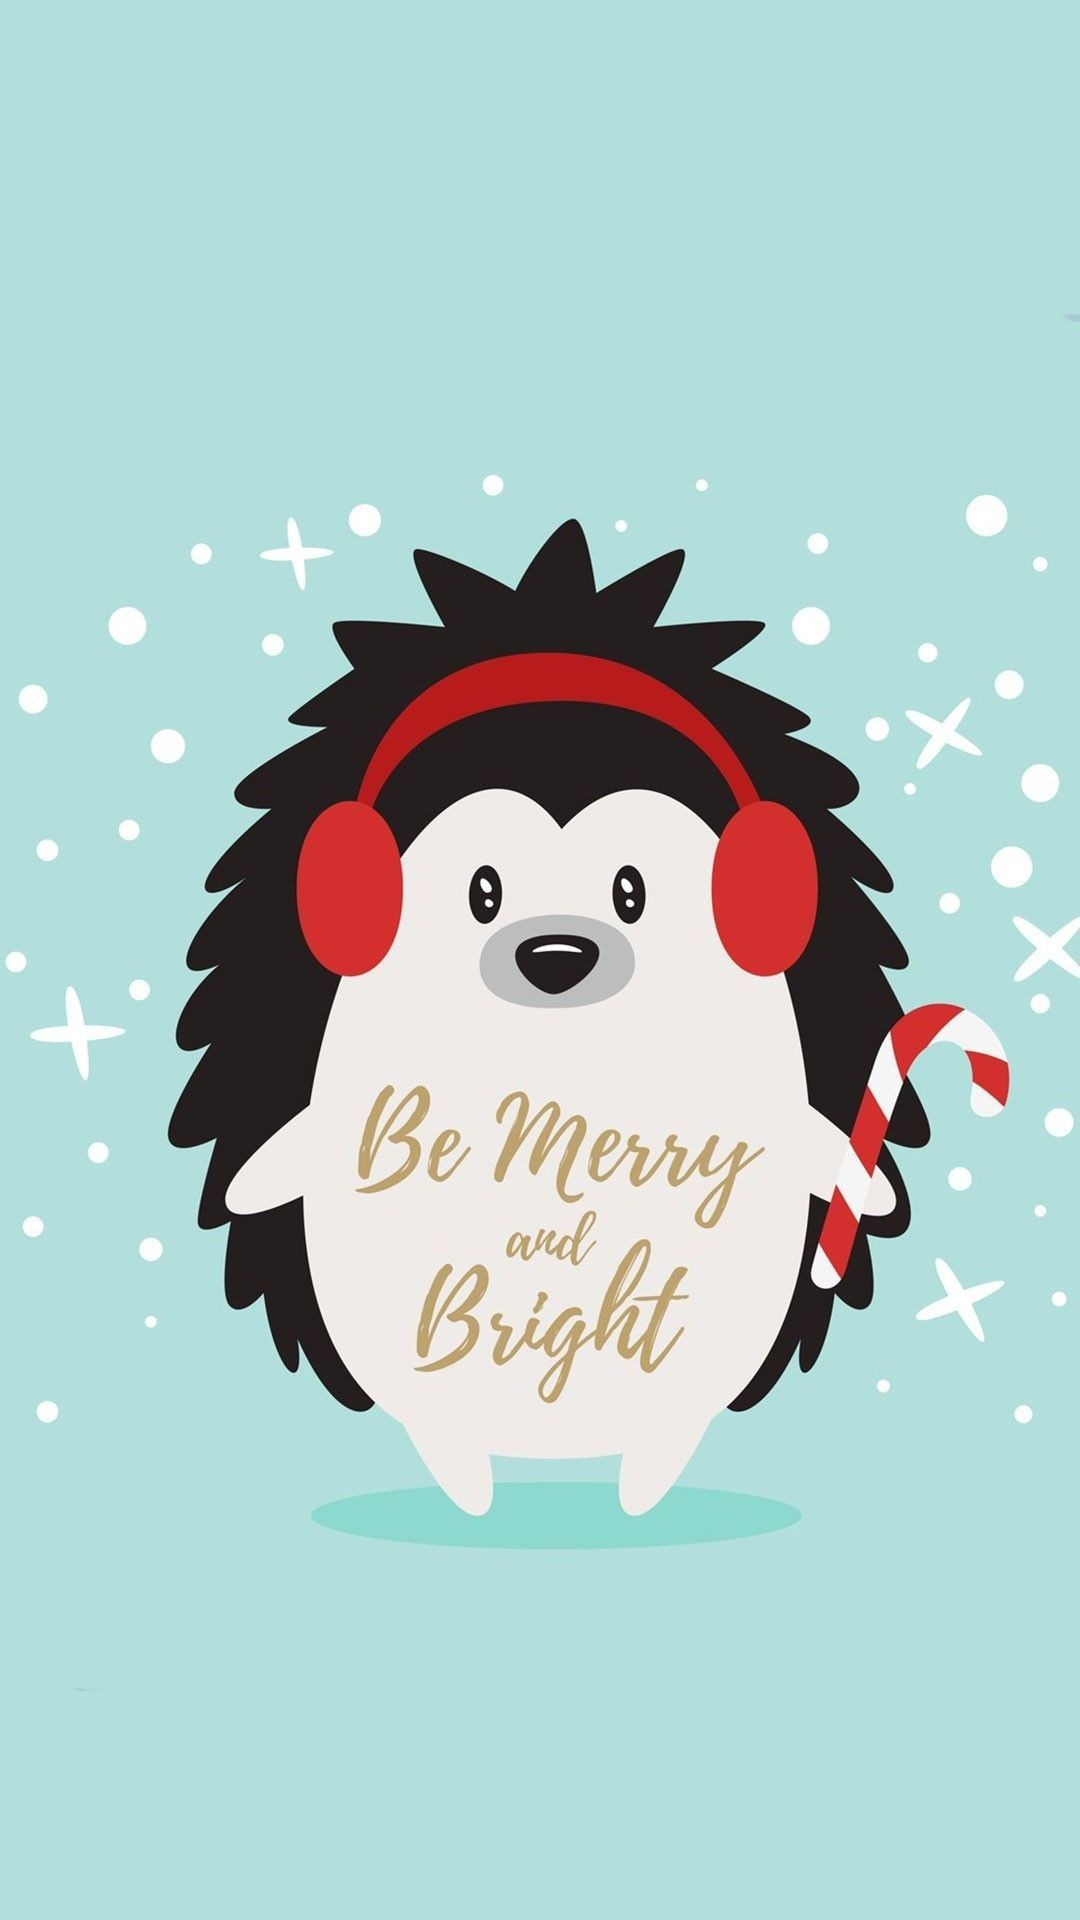 Pin By Bombastikgirl On Wallpapers Cute Christmas Wallpaper Xmas Wallpaper Christmas Lockscreen